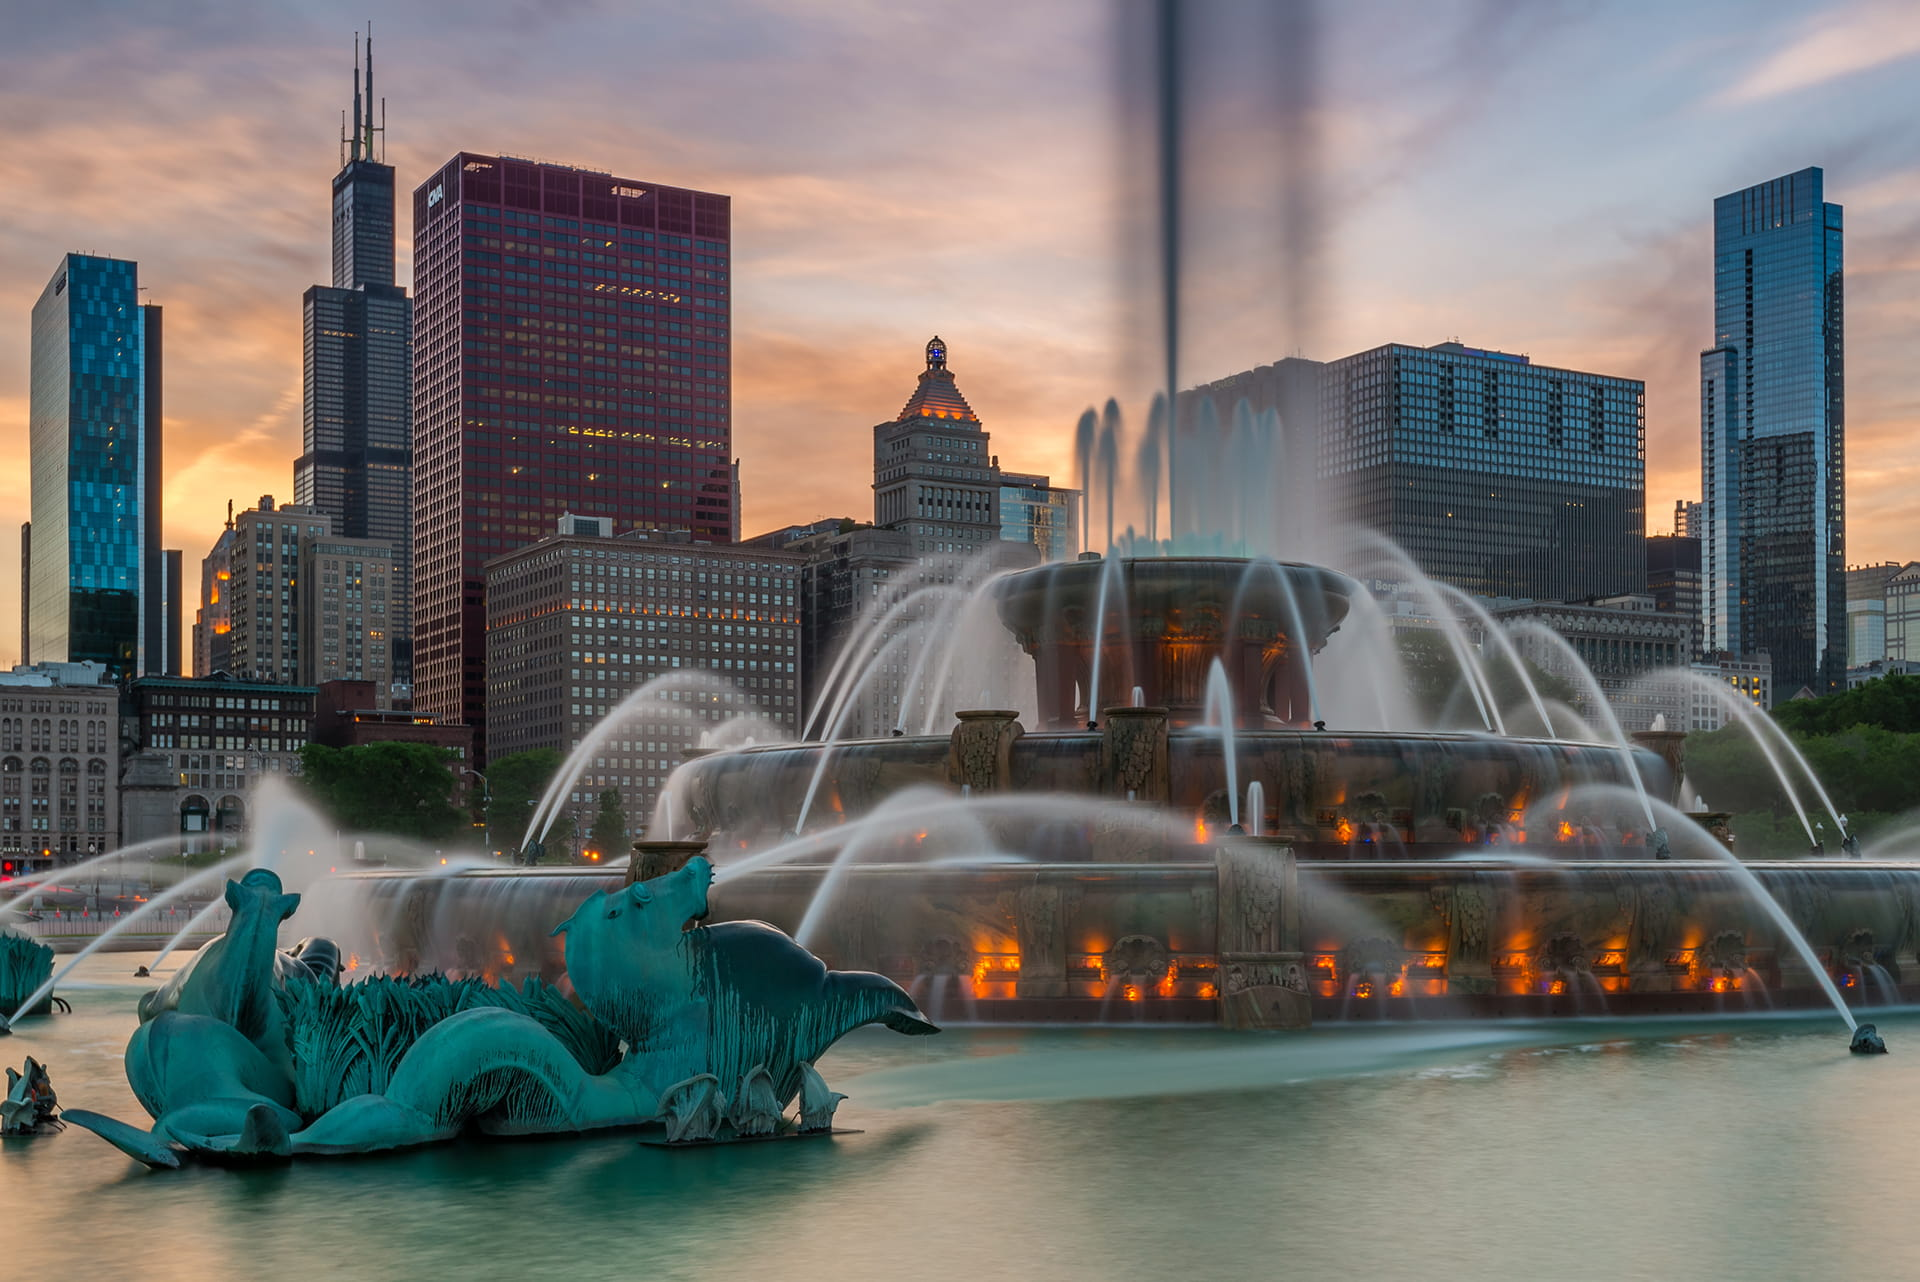 Chicago, Buckingham Fountain and skyscrapers against evening sky